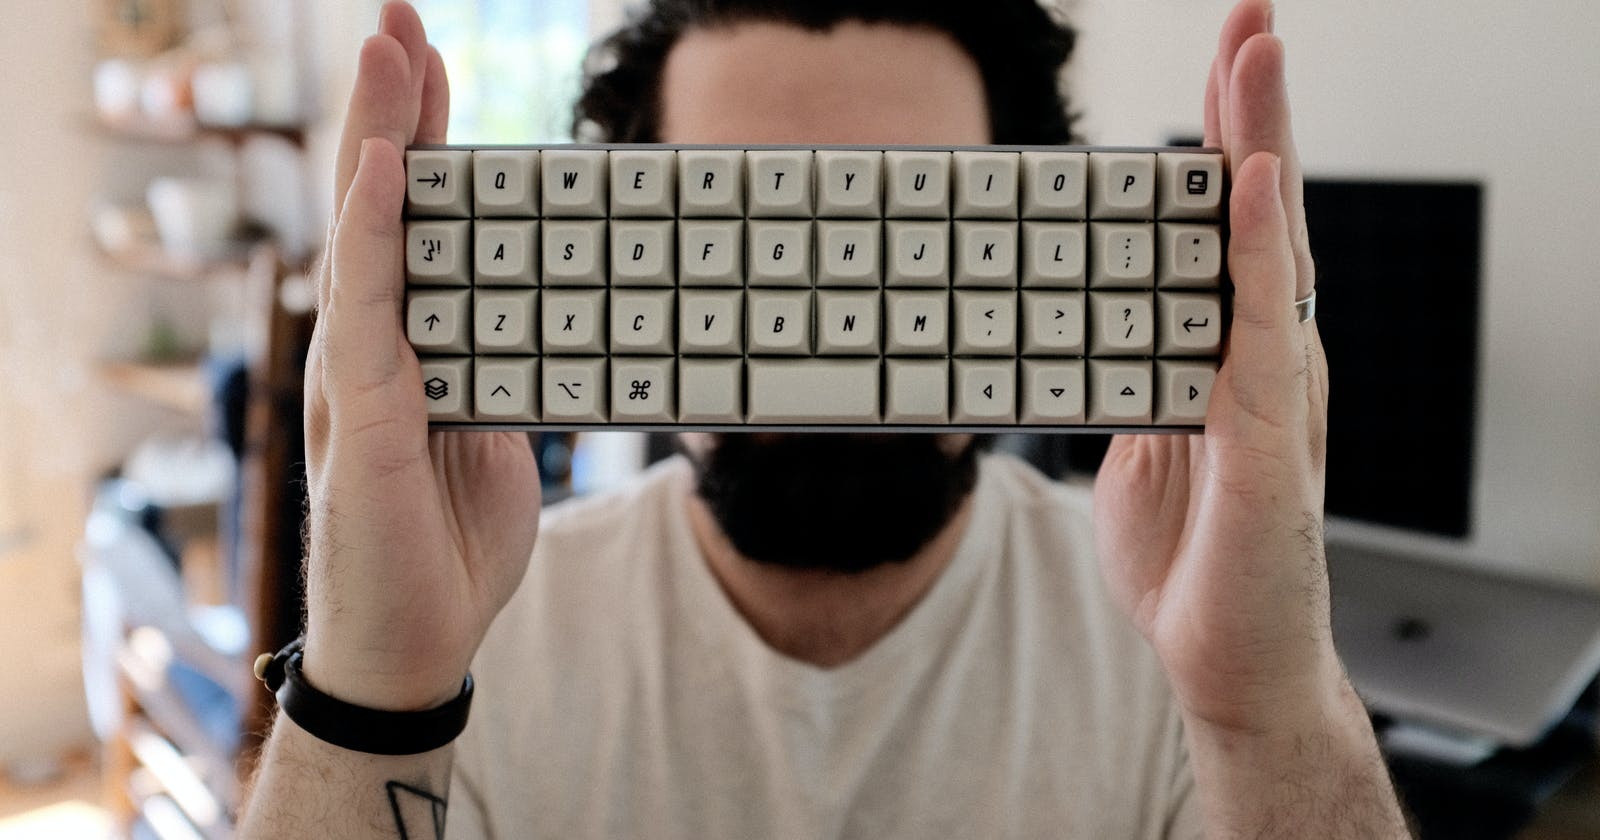 How a 40% Keyboard Could Make You More Productive  ⌨️